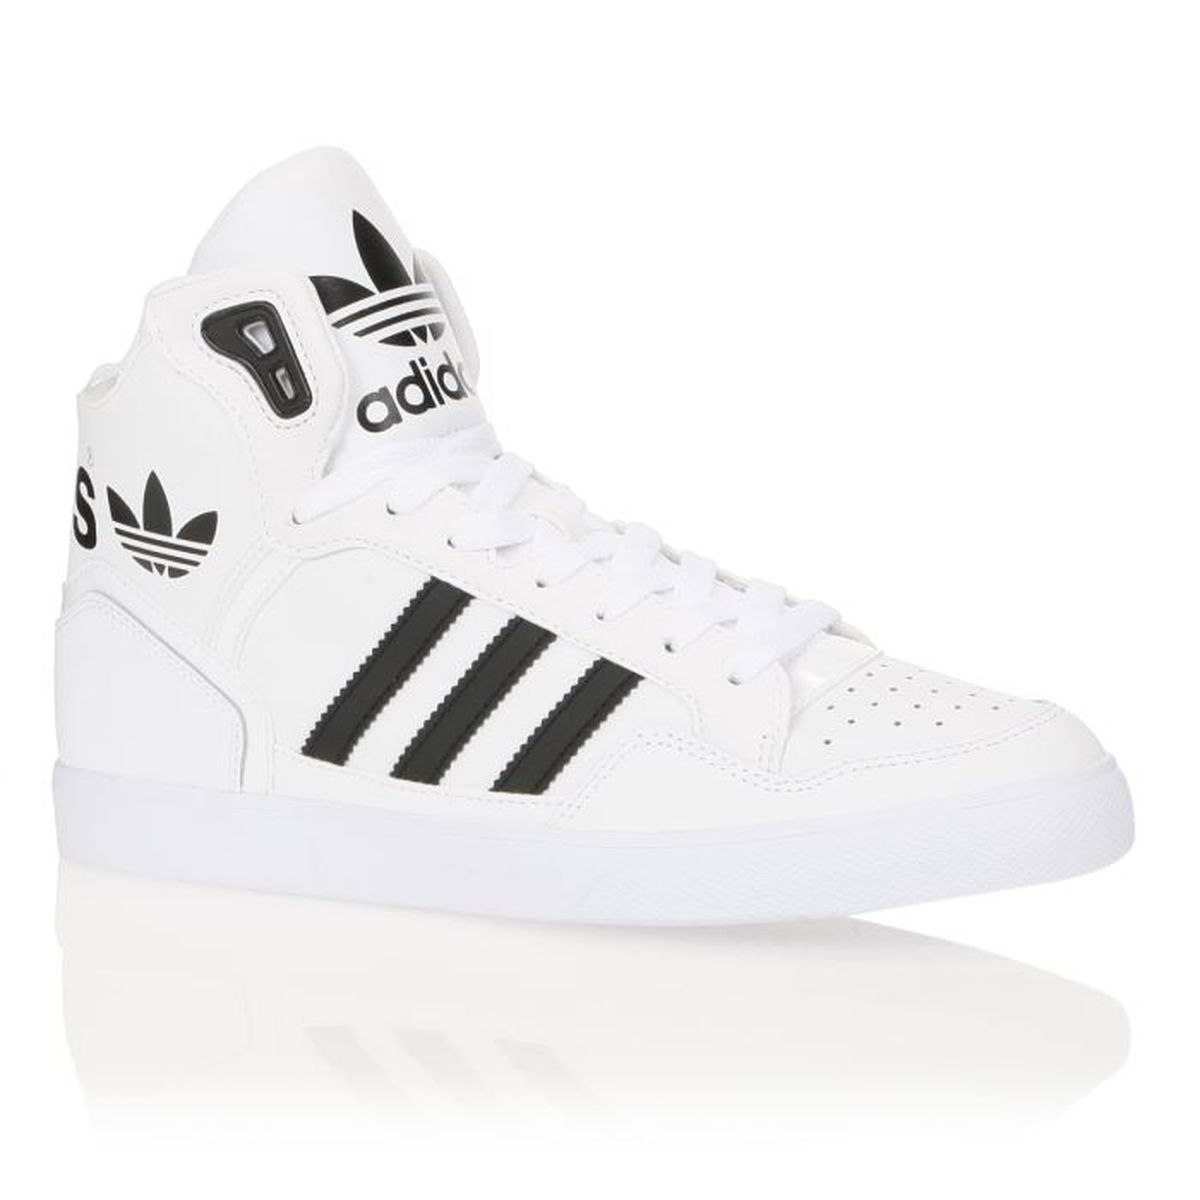 ADIDAS ORIGINALS Baskets Extaball Femme Blanc Noir Achat